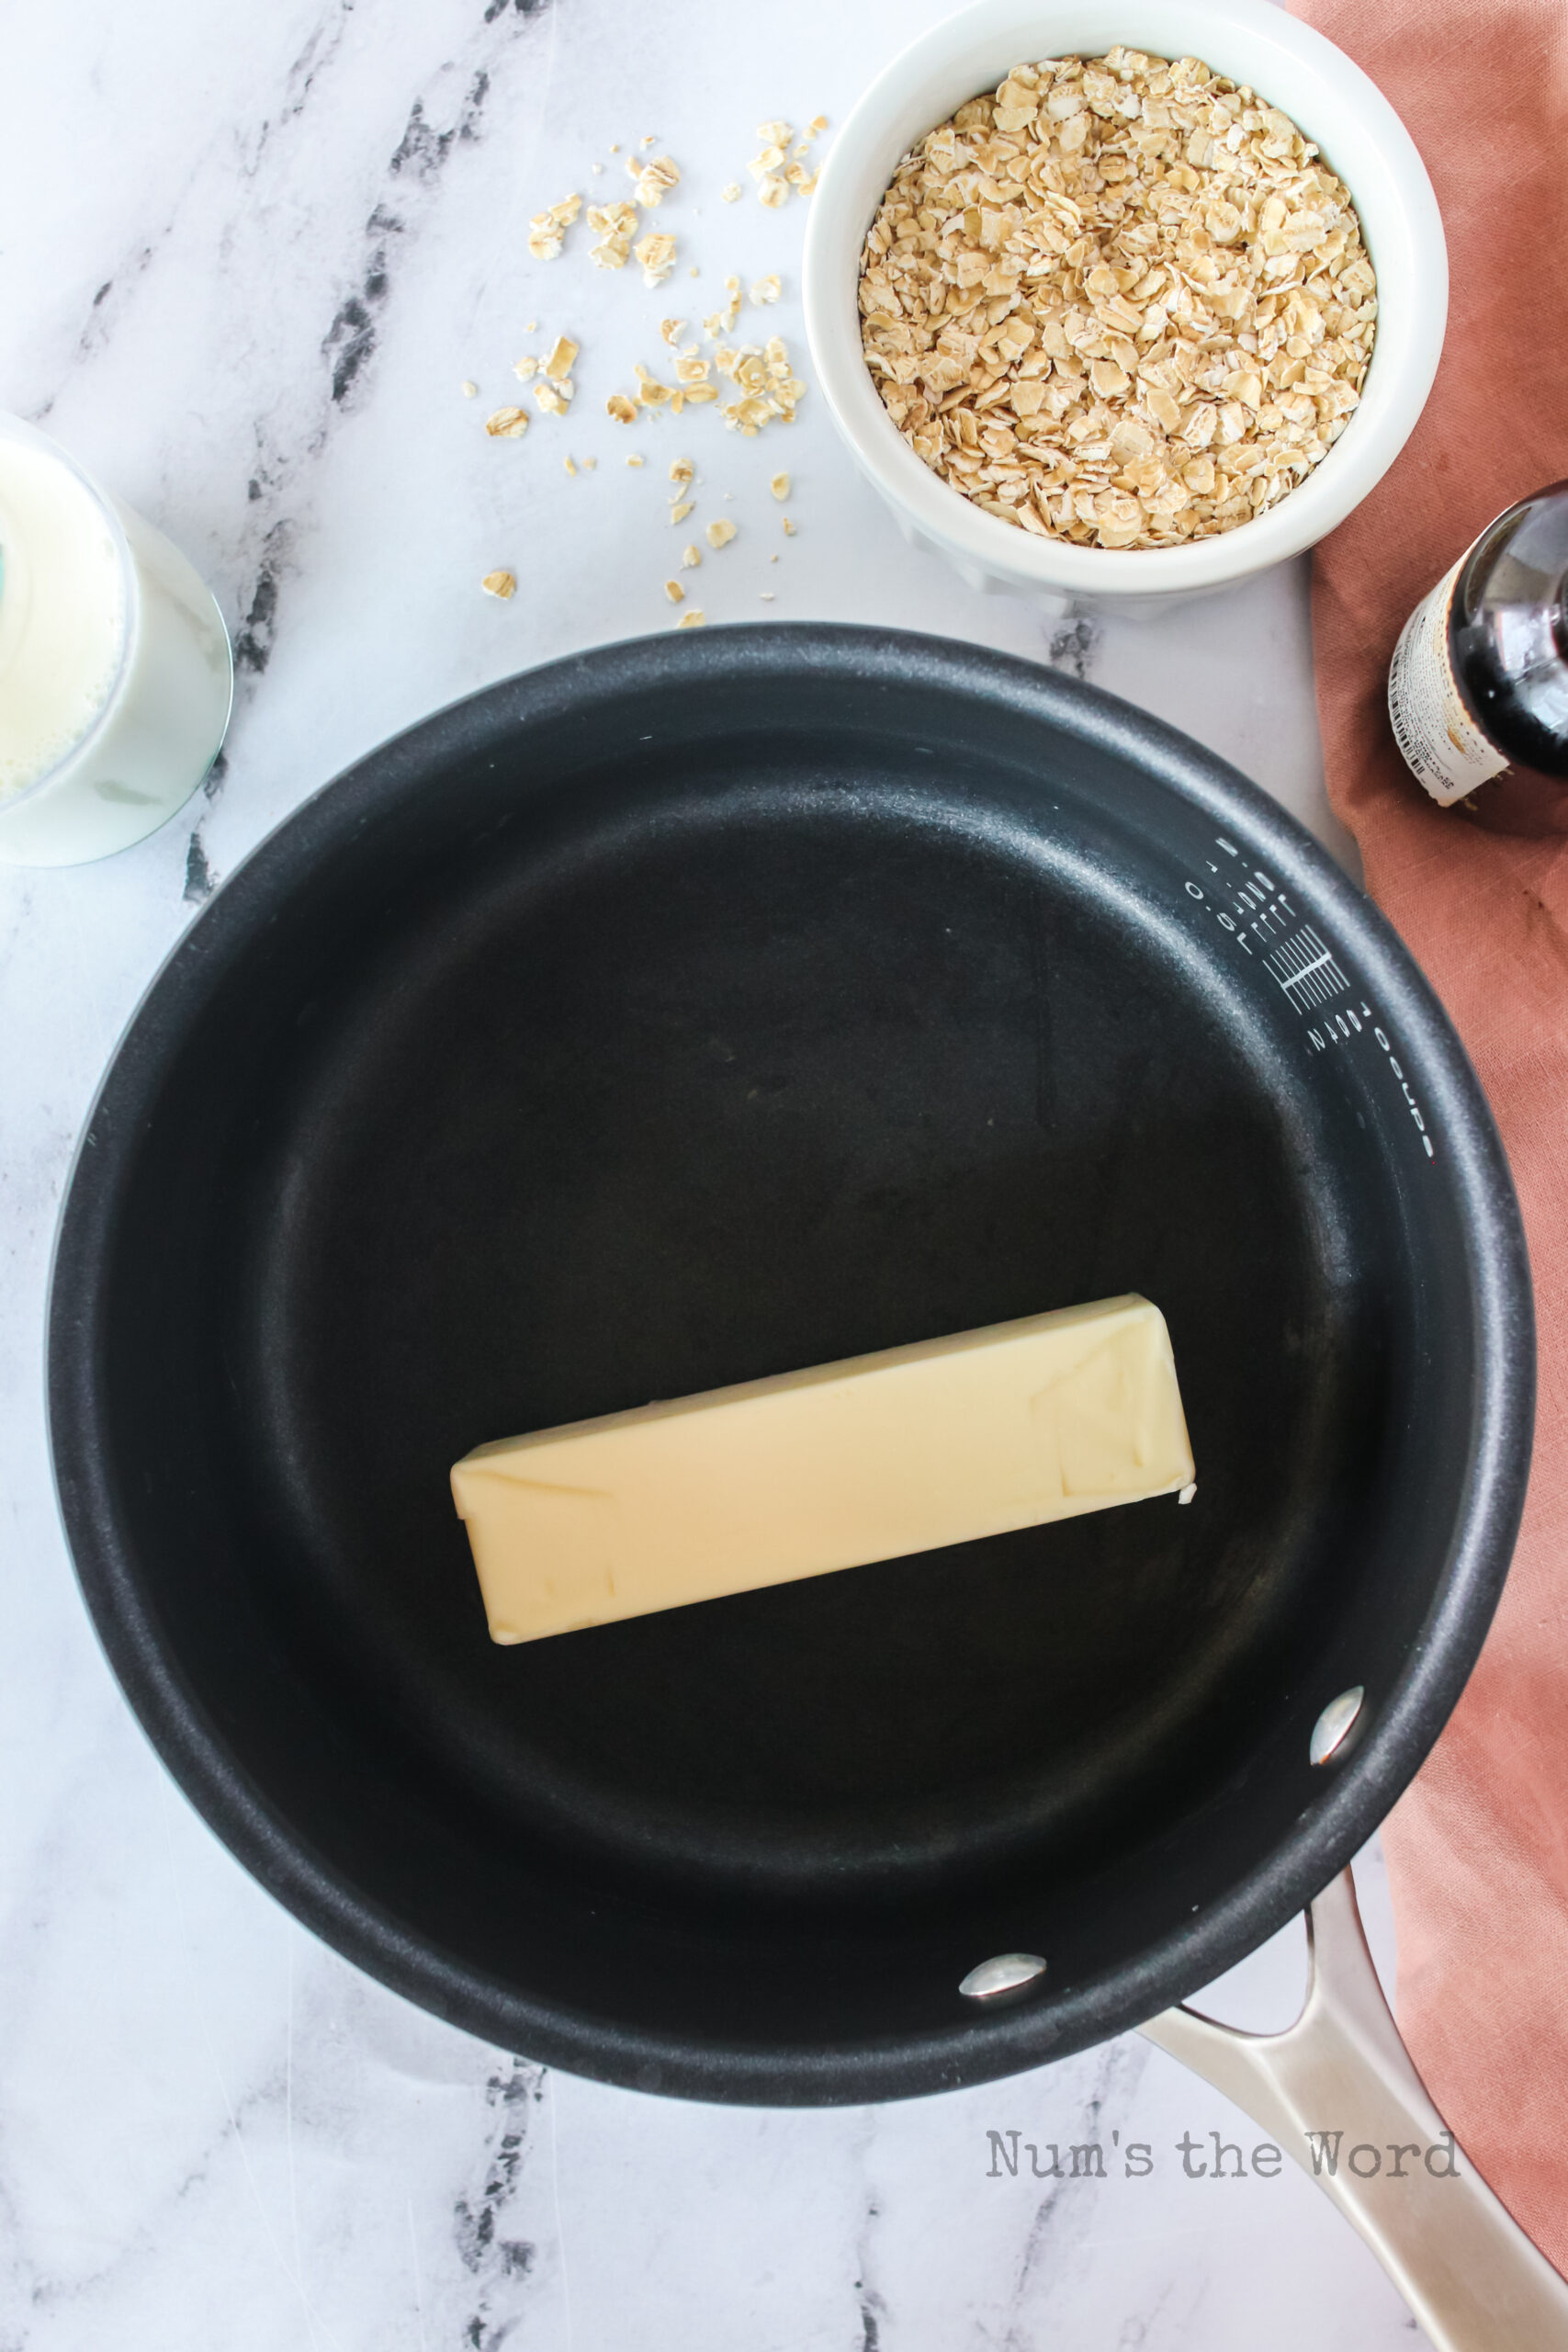 stick of butter in a pot, unmelted.